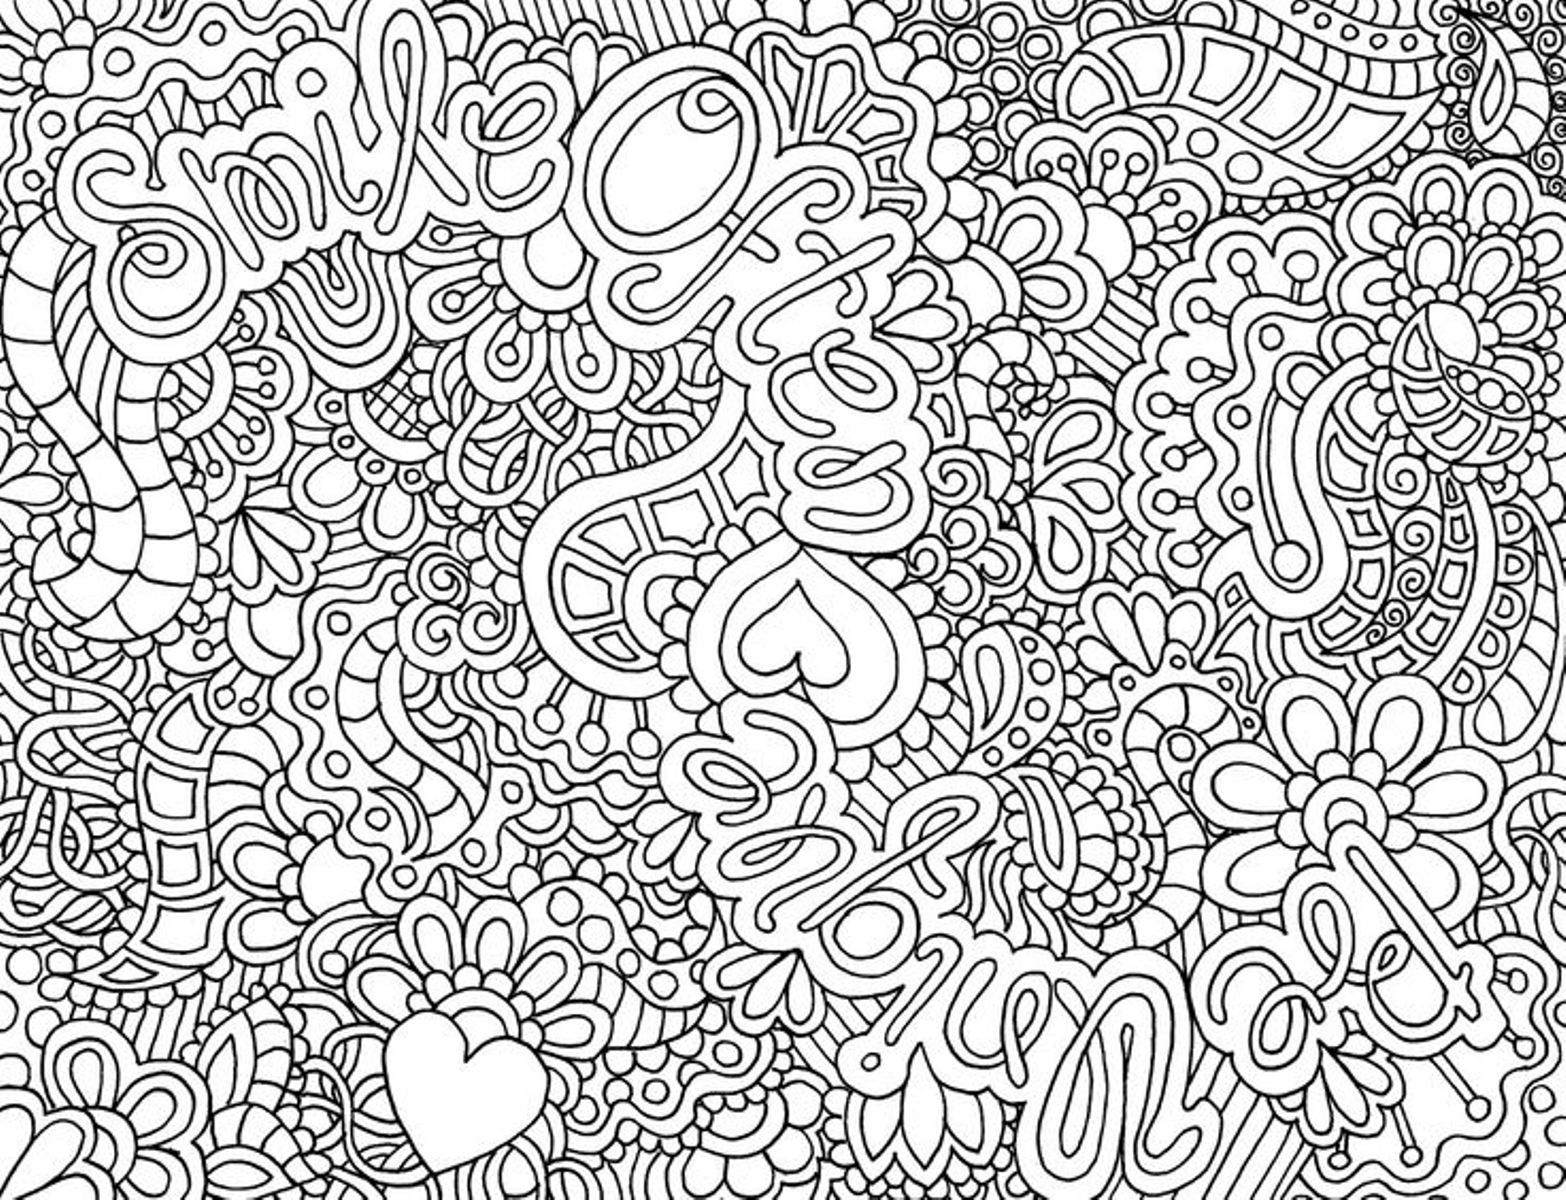 Hard animal coloring pages adults - Hard Coloring Page Coloring Pages For Kids And For Adults